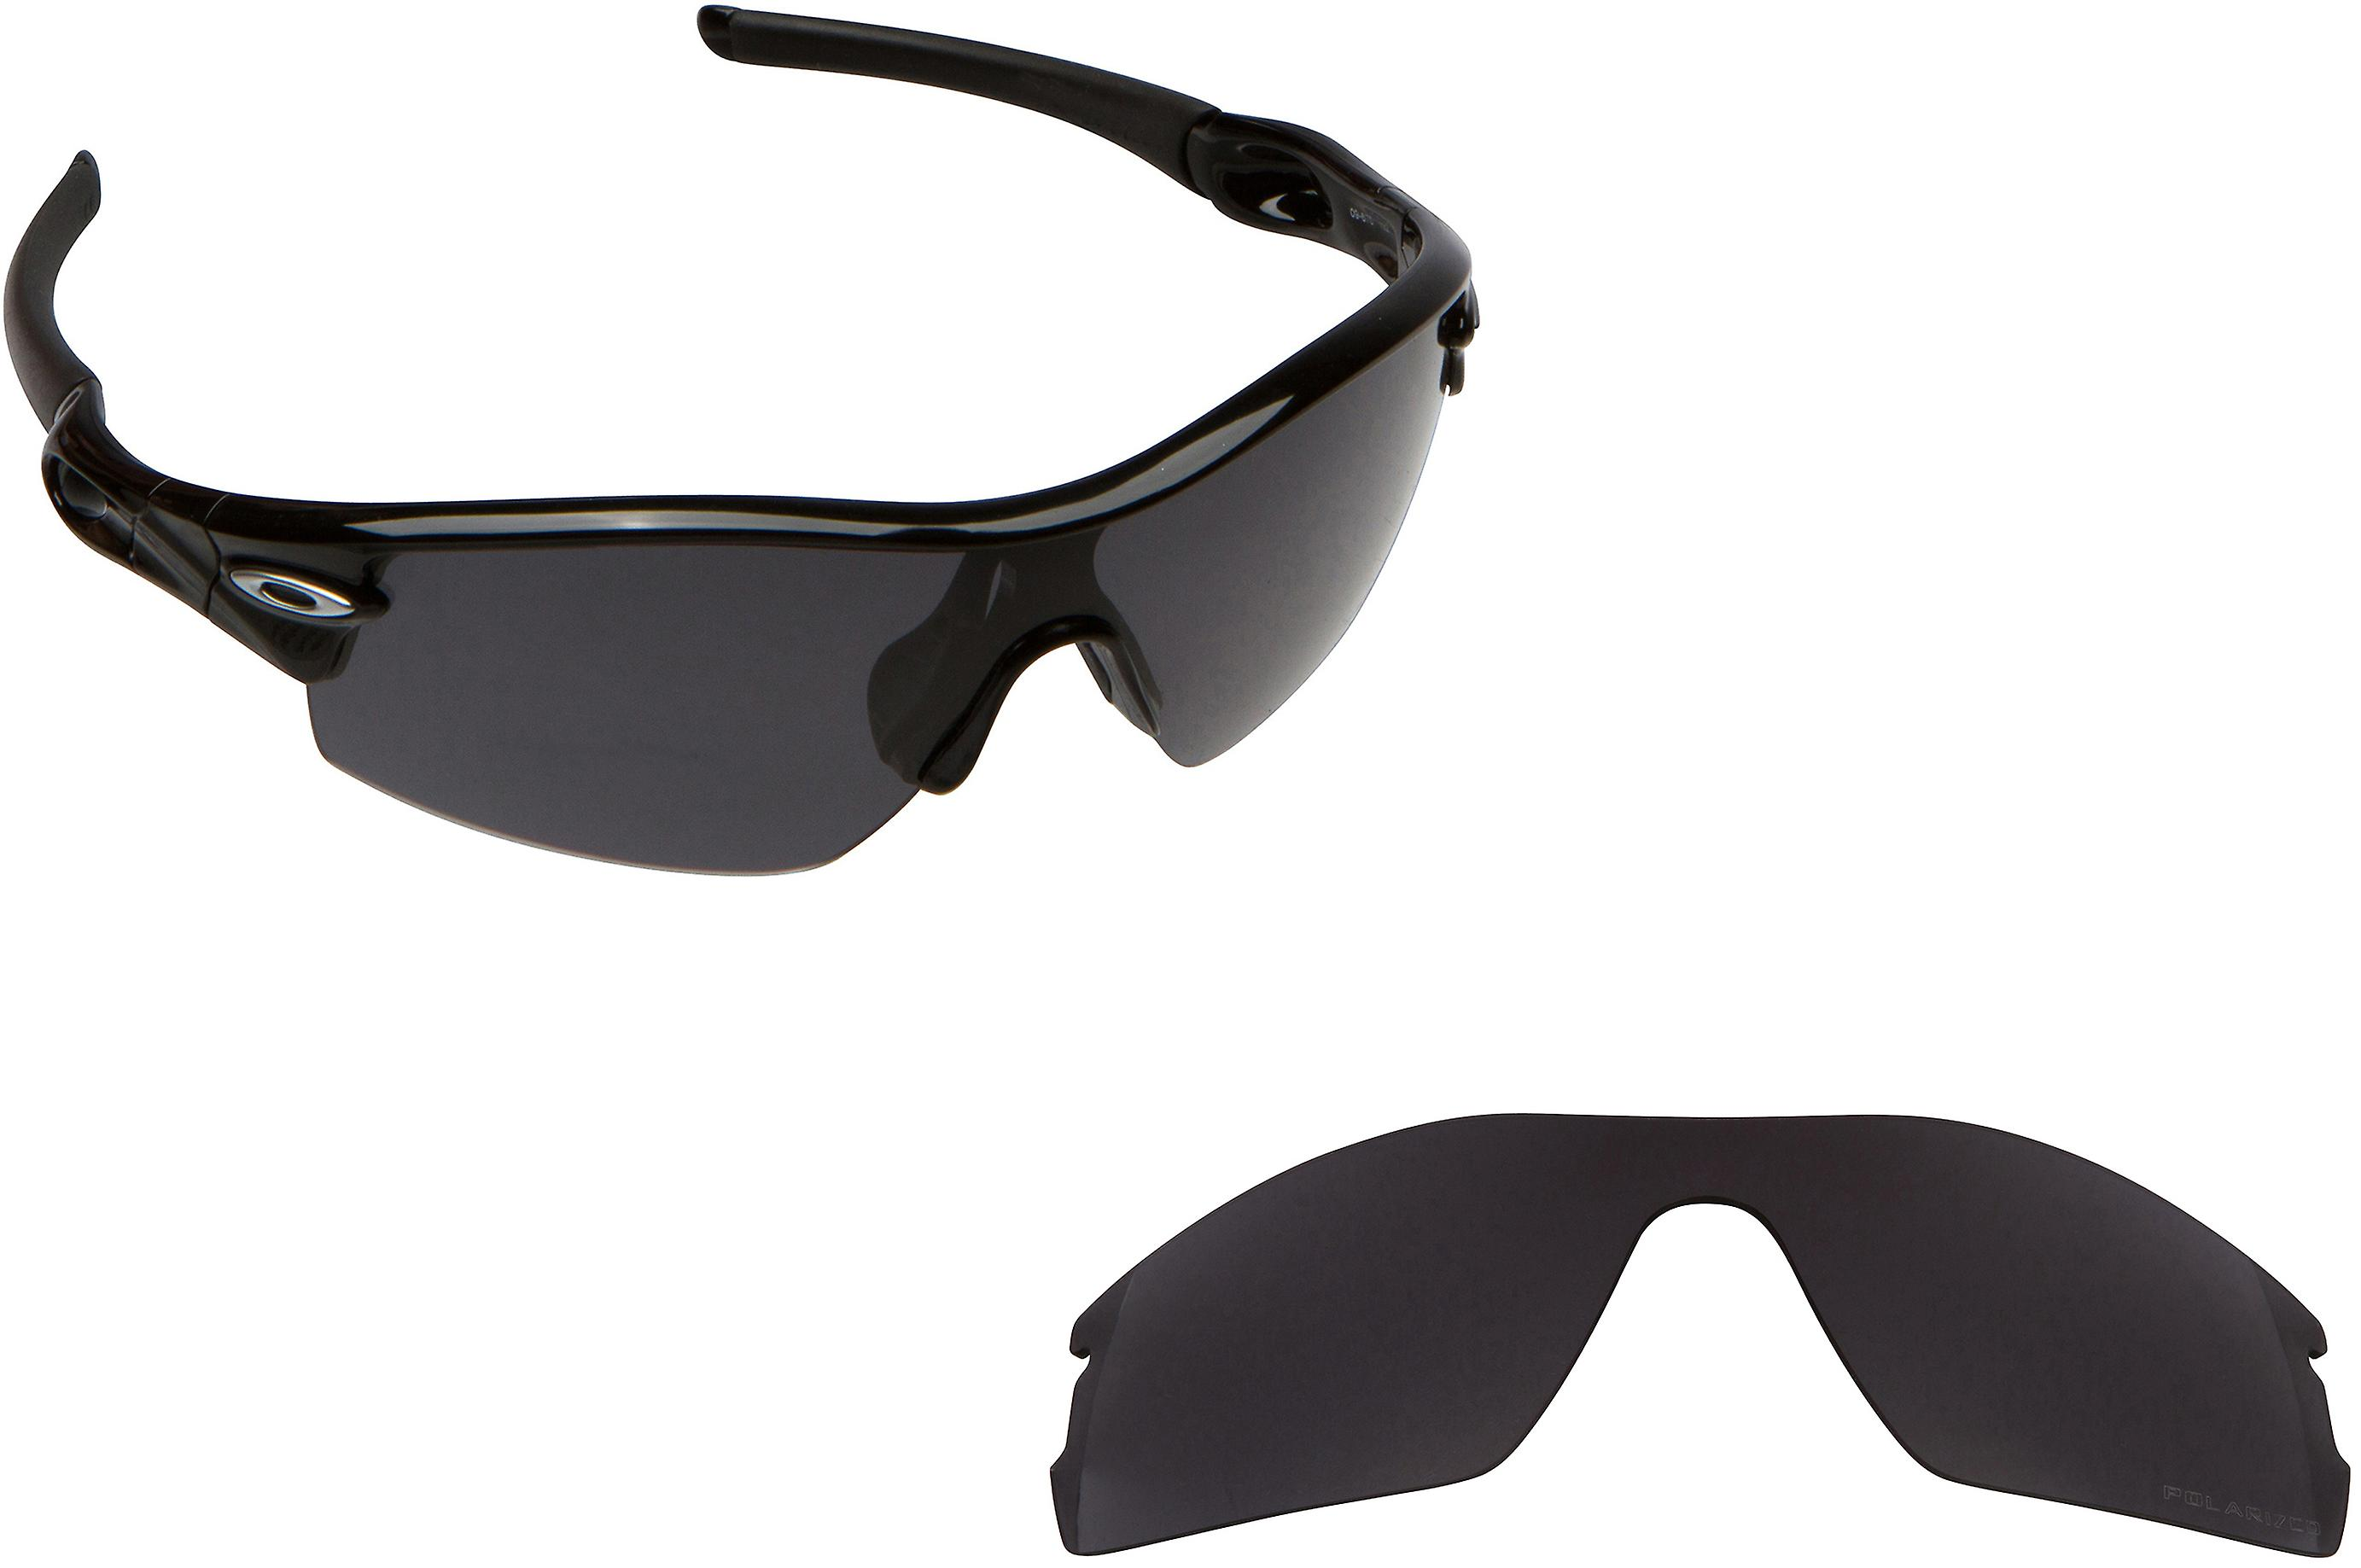 514367225f RADAR PITCH Replacement Lenses Polarized Black by SEEK fits OAKLEY  Sunglasses